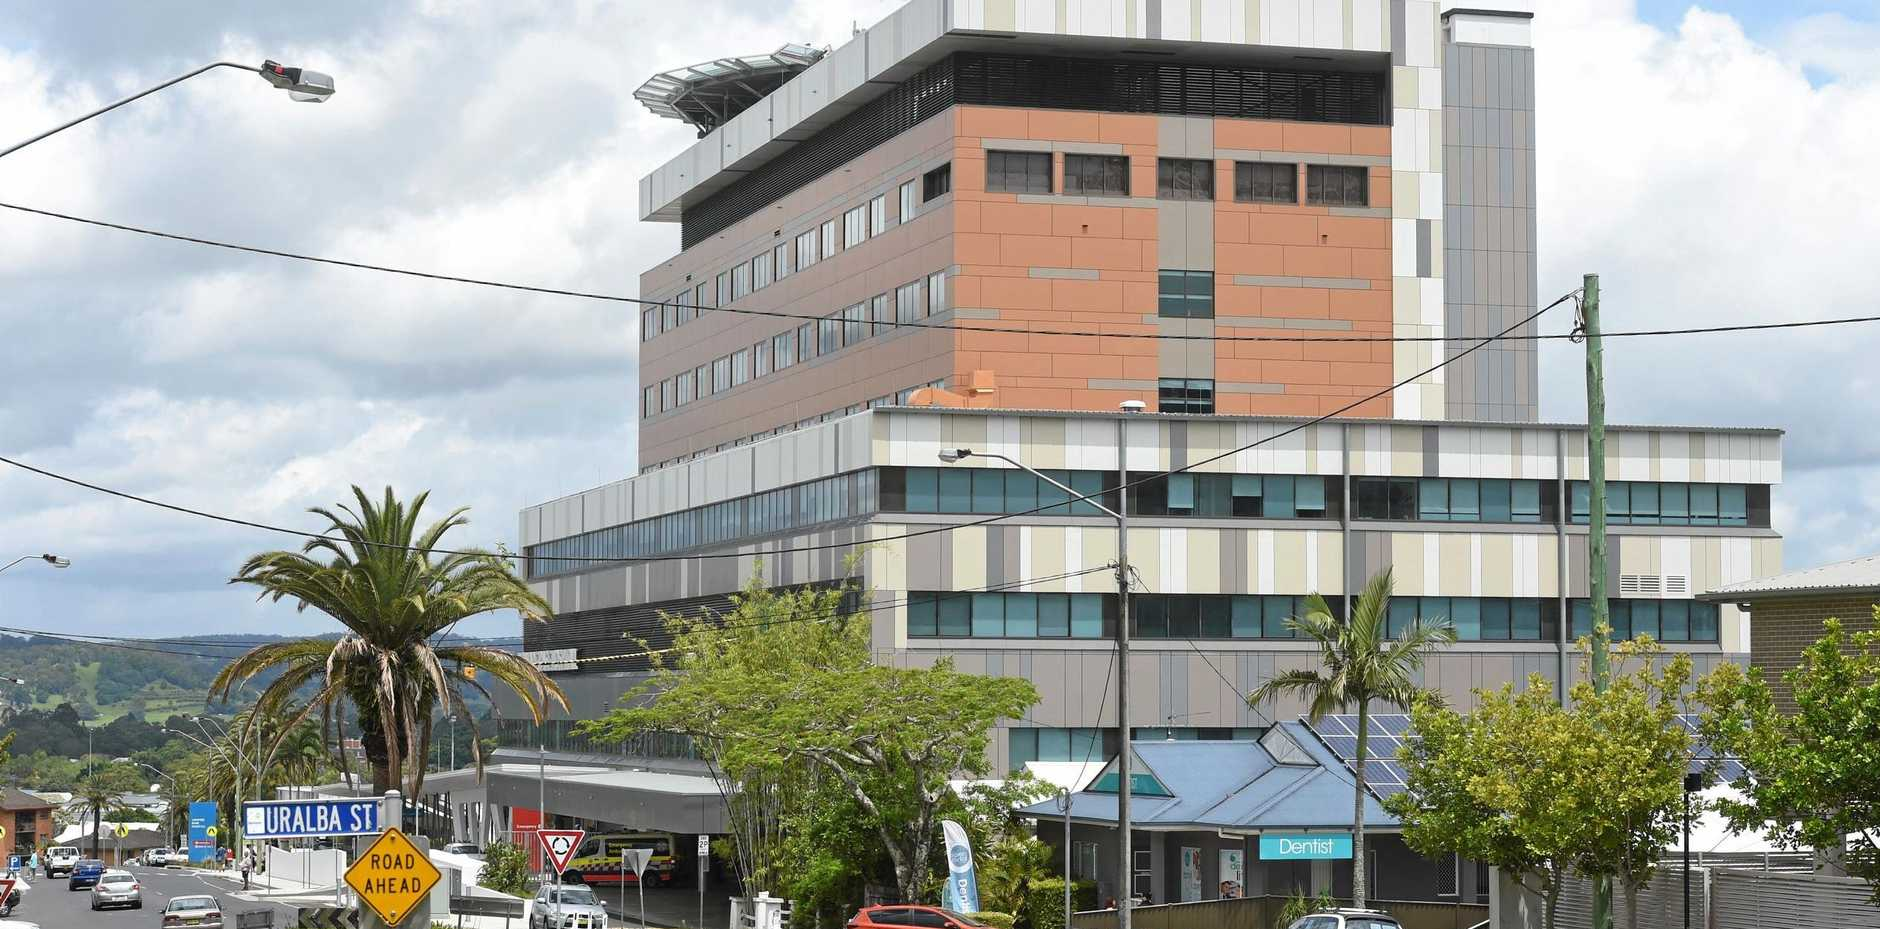 A doctor's conduct will be assessed after death at Lismore Base Hospital.